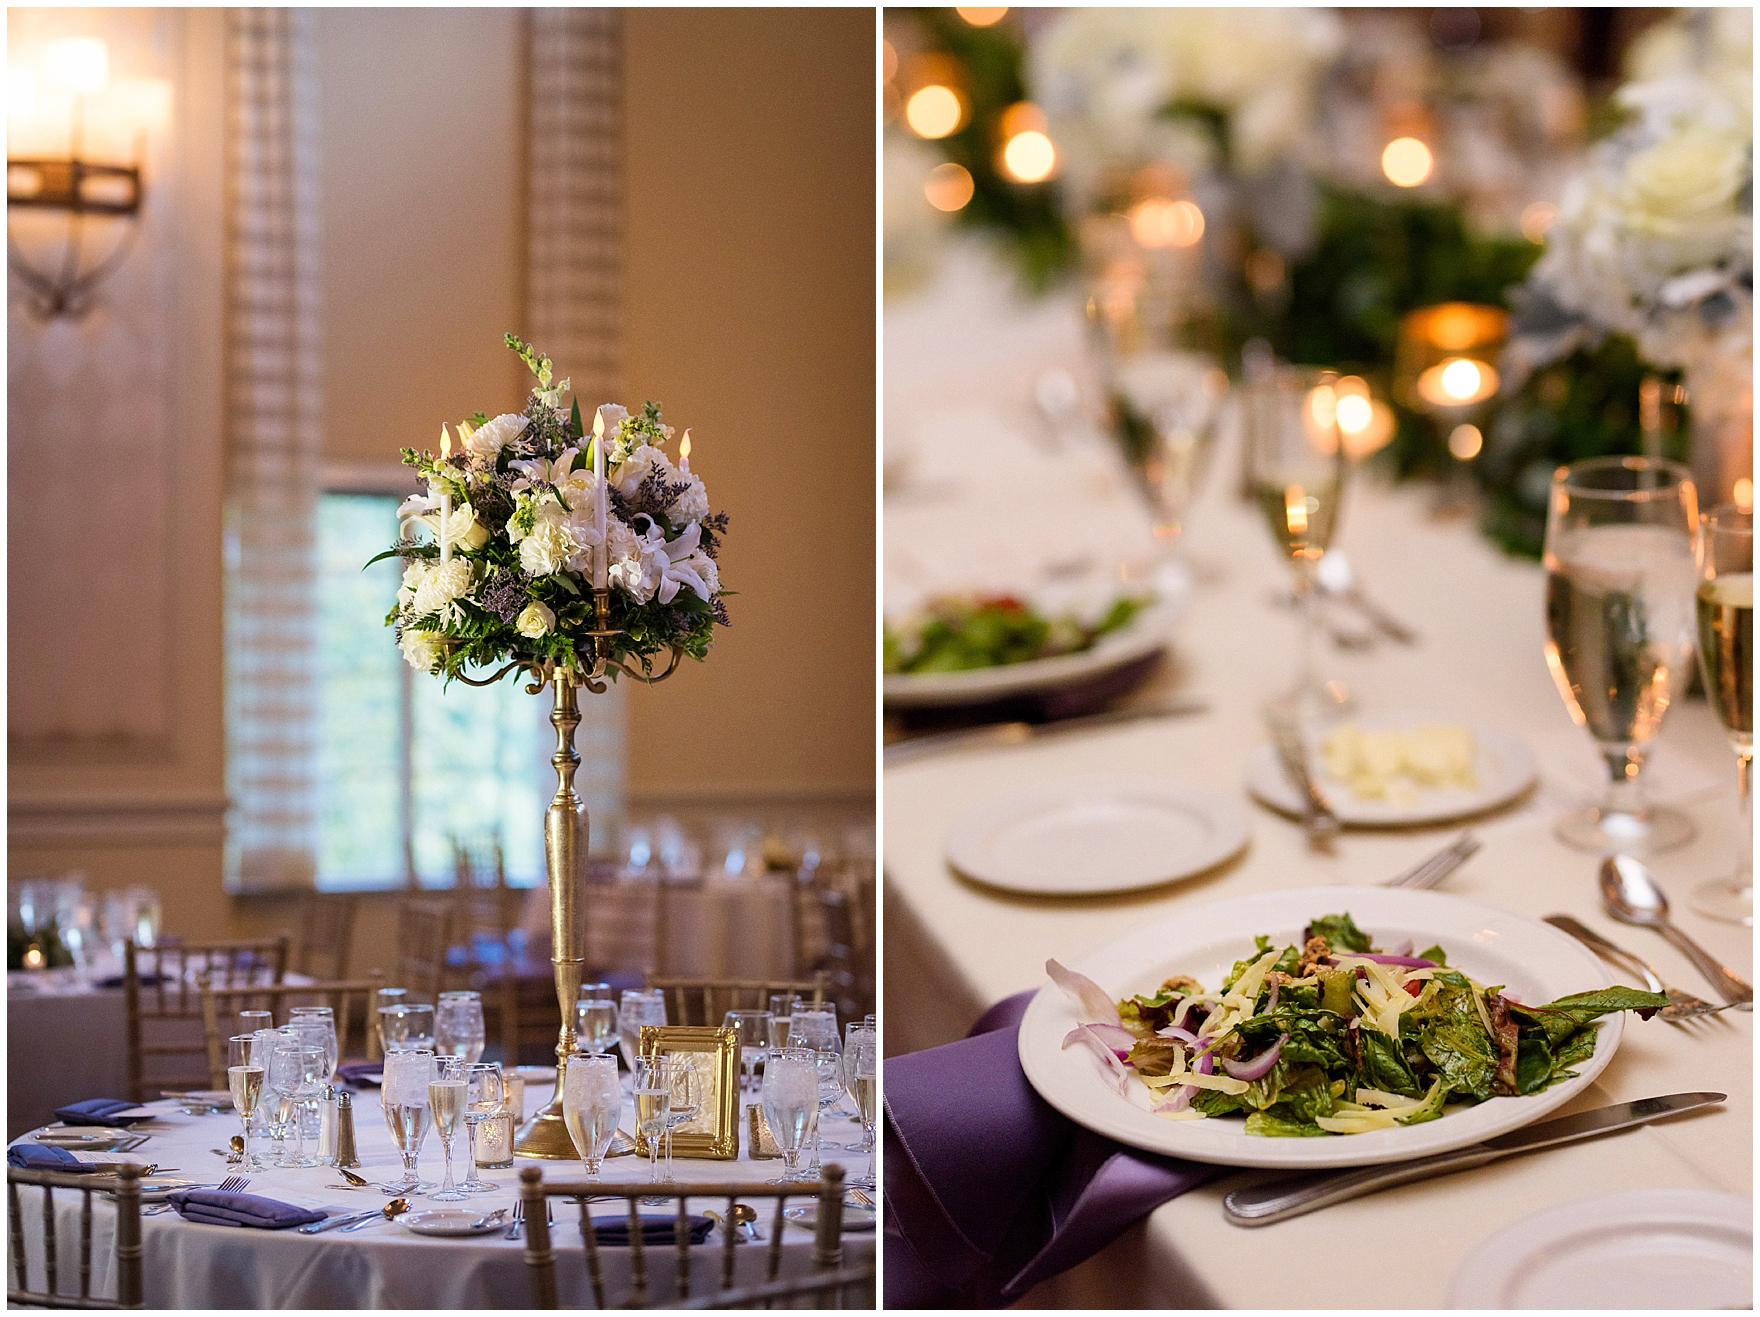 Details of the centerpieces and table settings for a Glen Club Glenview Illinois wedding.